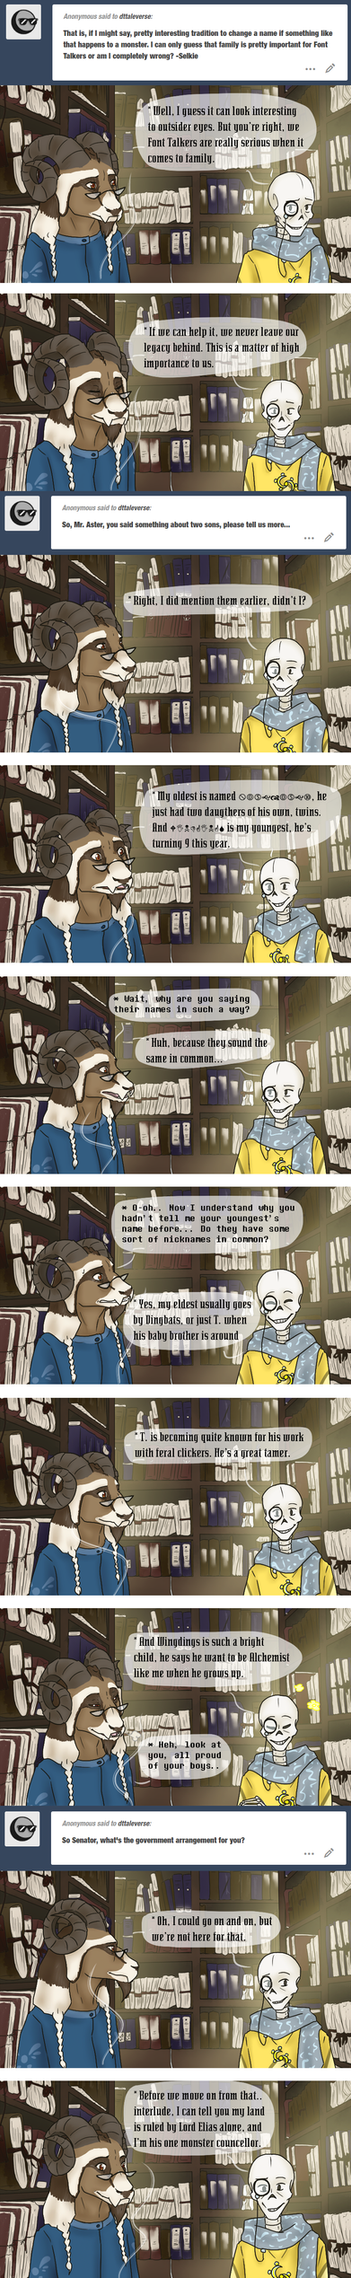 DTTVerse: Chapter I page 54 (Ask47) by Loumun-Versen